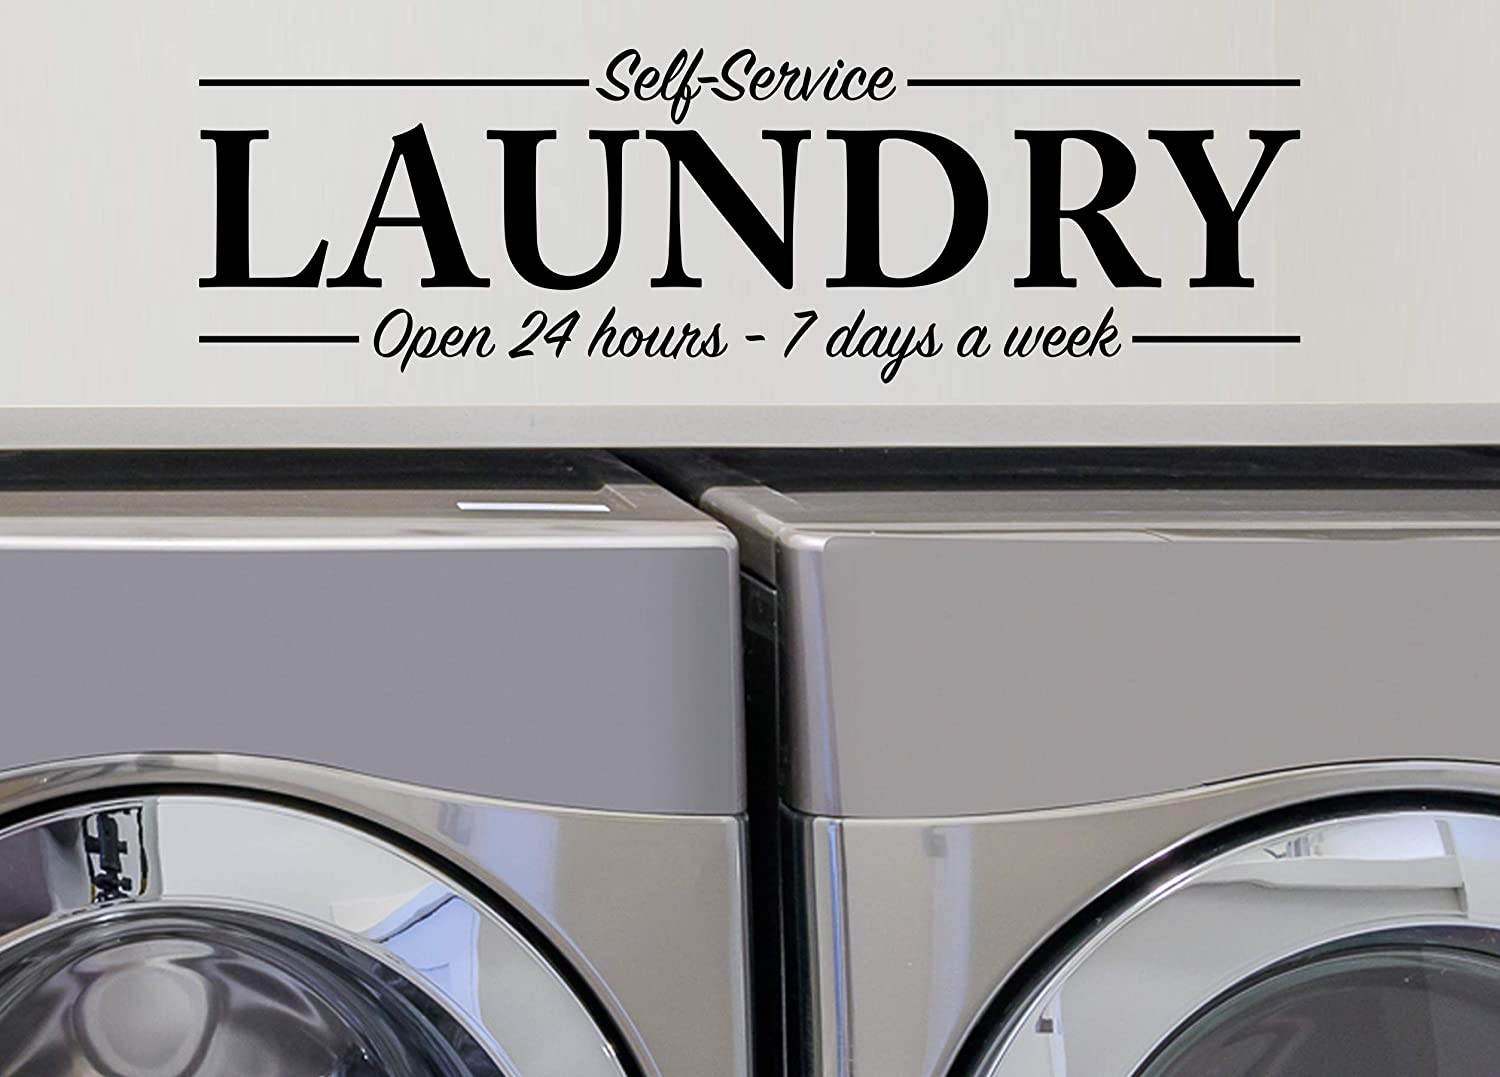 Story of Home LLC Self-Service Laundry Open 24 Hours 7 Days a Week Laundry Room Decal Laundry Vinyl Wall Decal